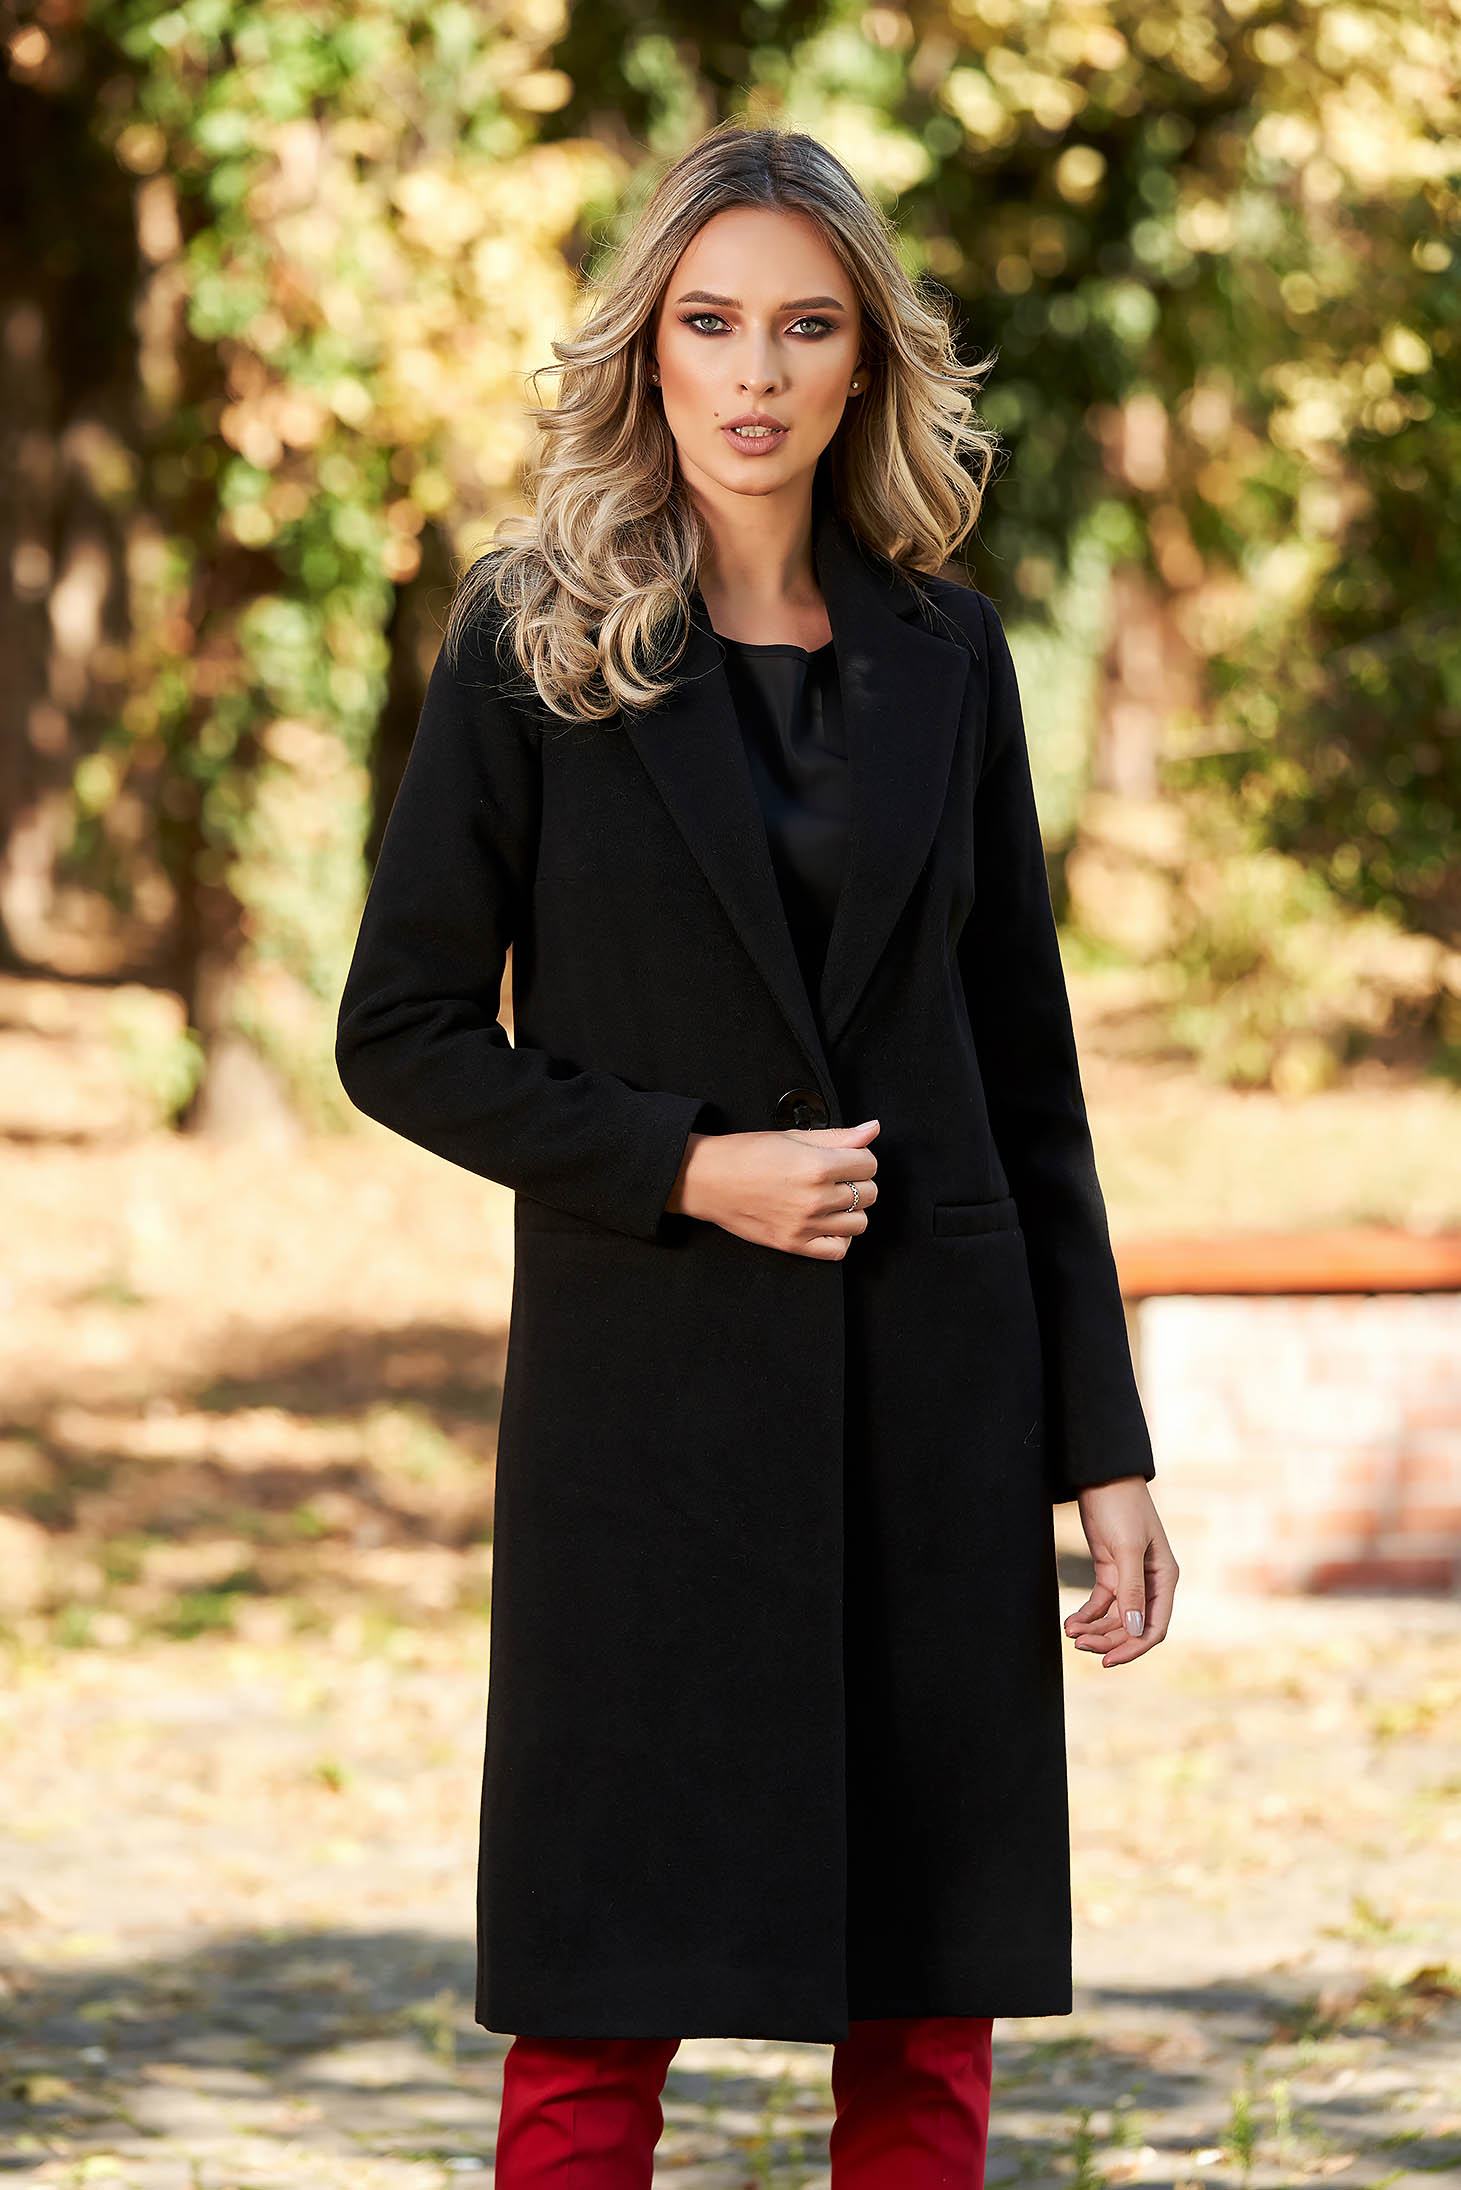 LaDonna casual straight with pockets black coat from wool